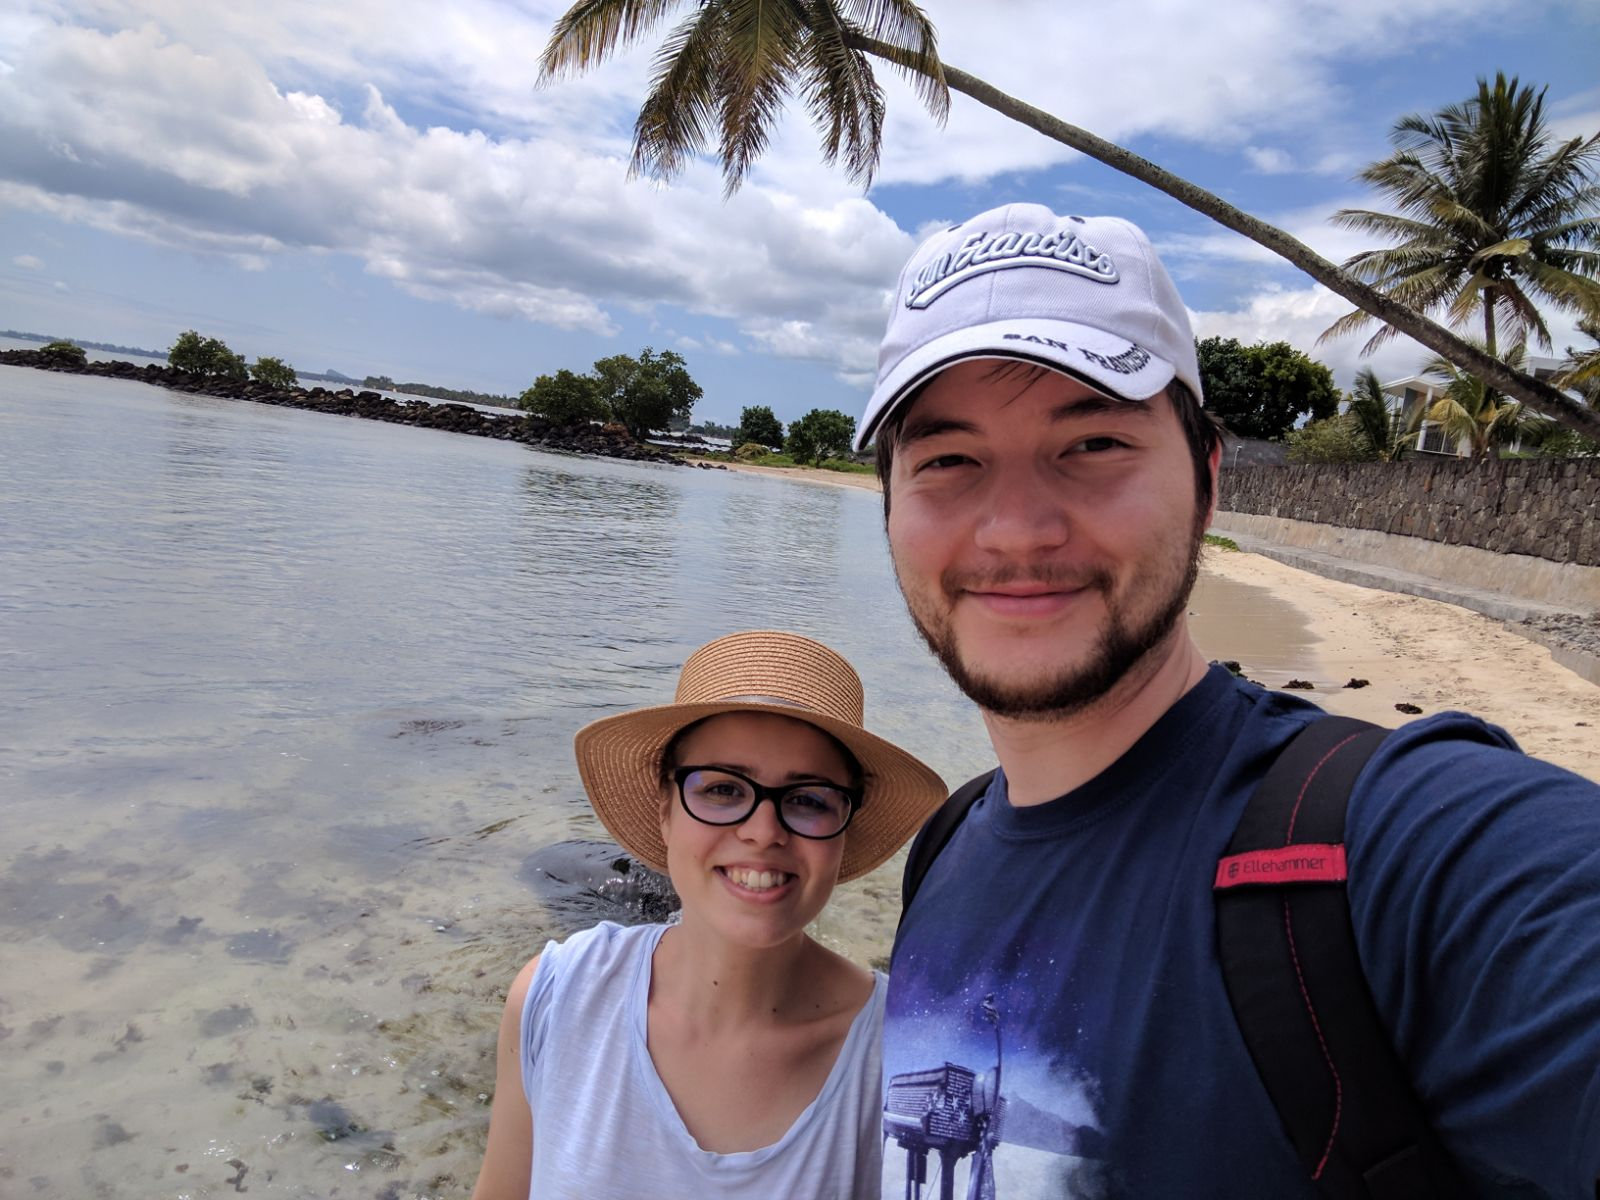 Us smiling on a beach